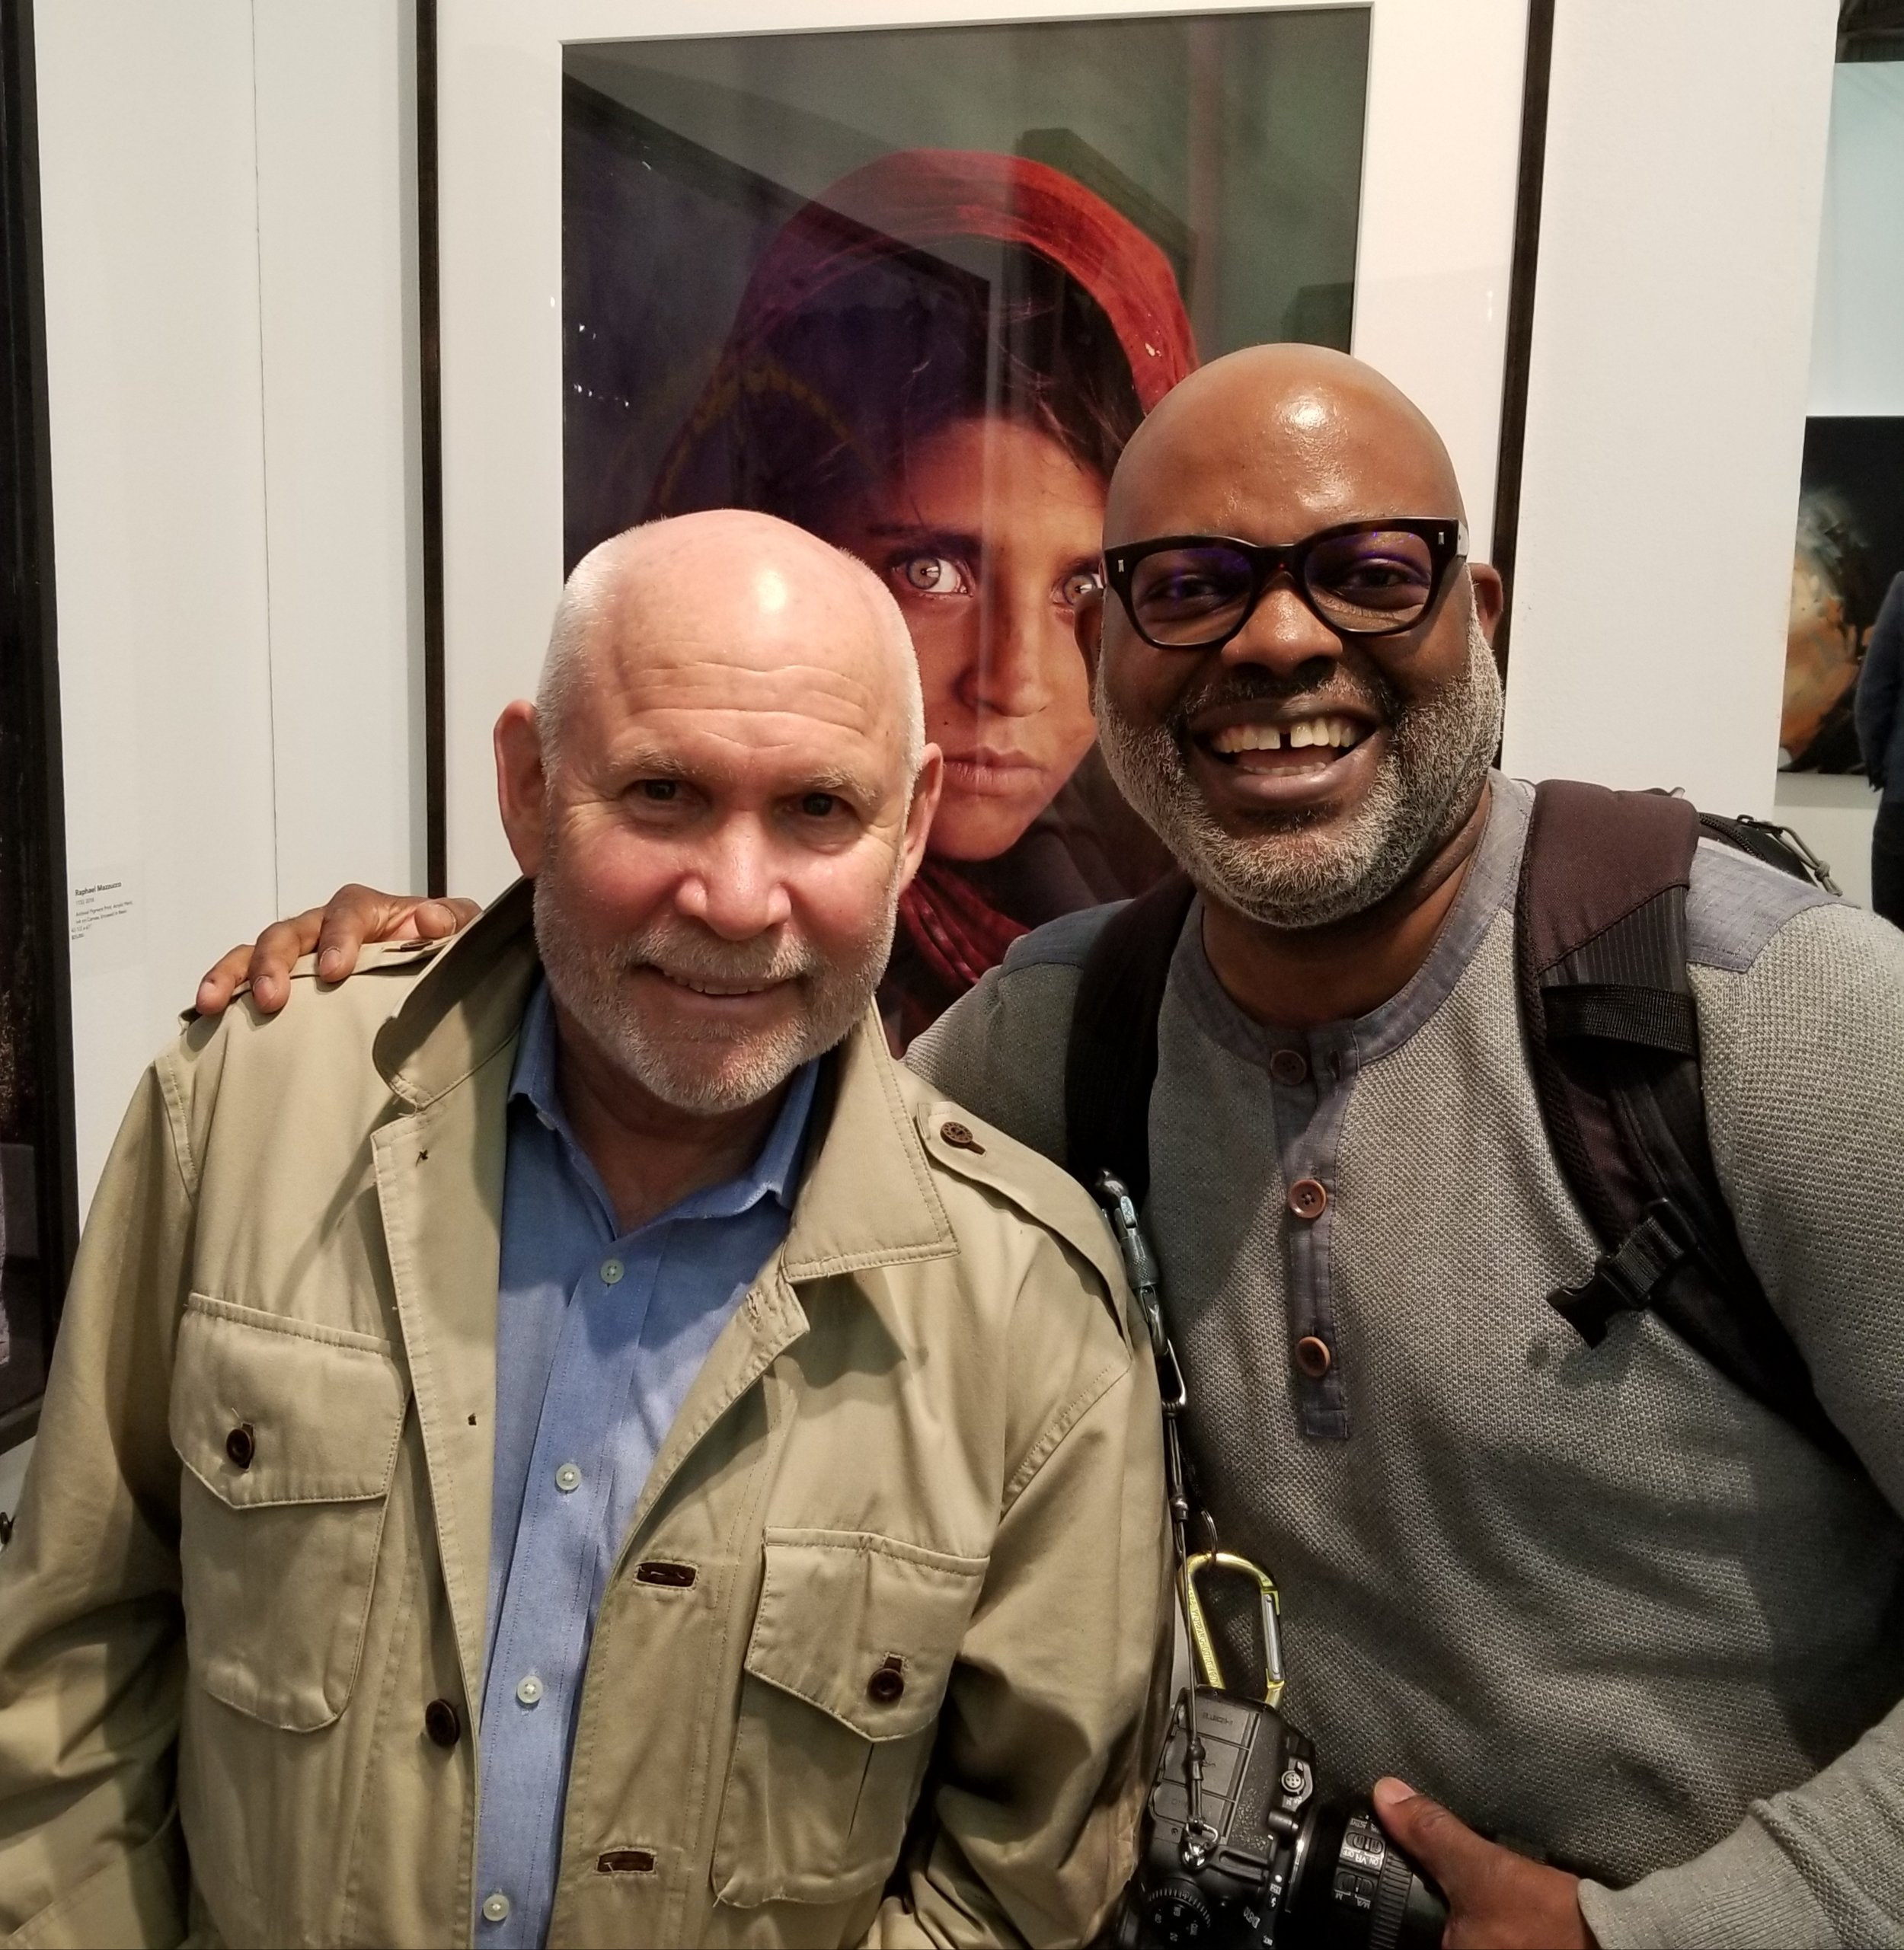 Steve McCurry and Ron Foster at Art New York